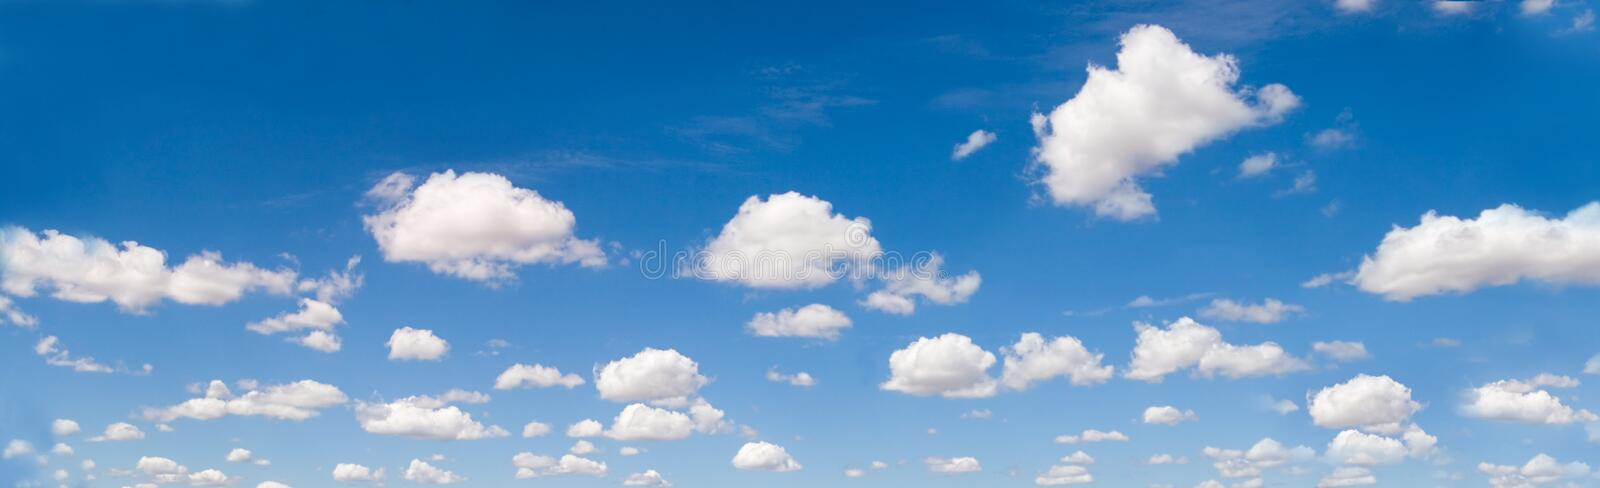 Panorama de Cloudscape photographie stock libre de droits